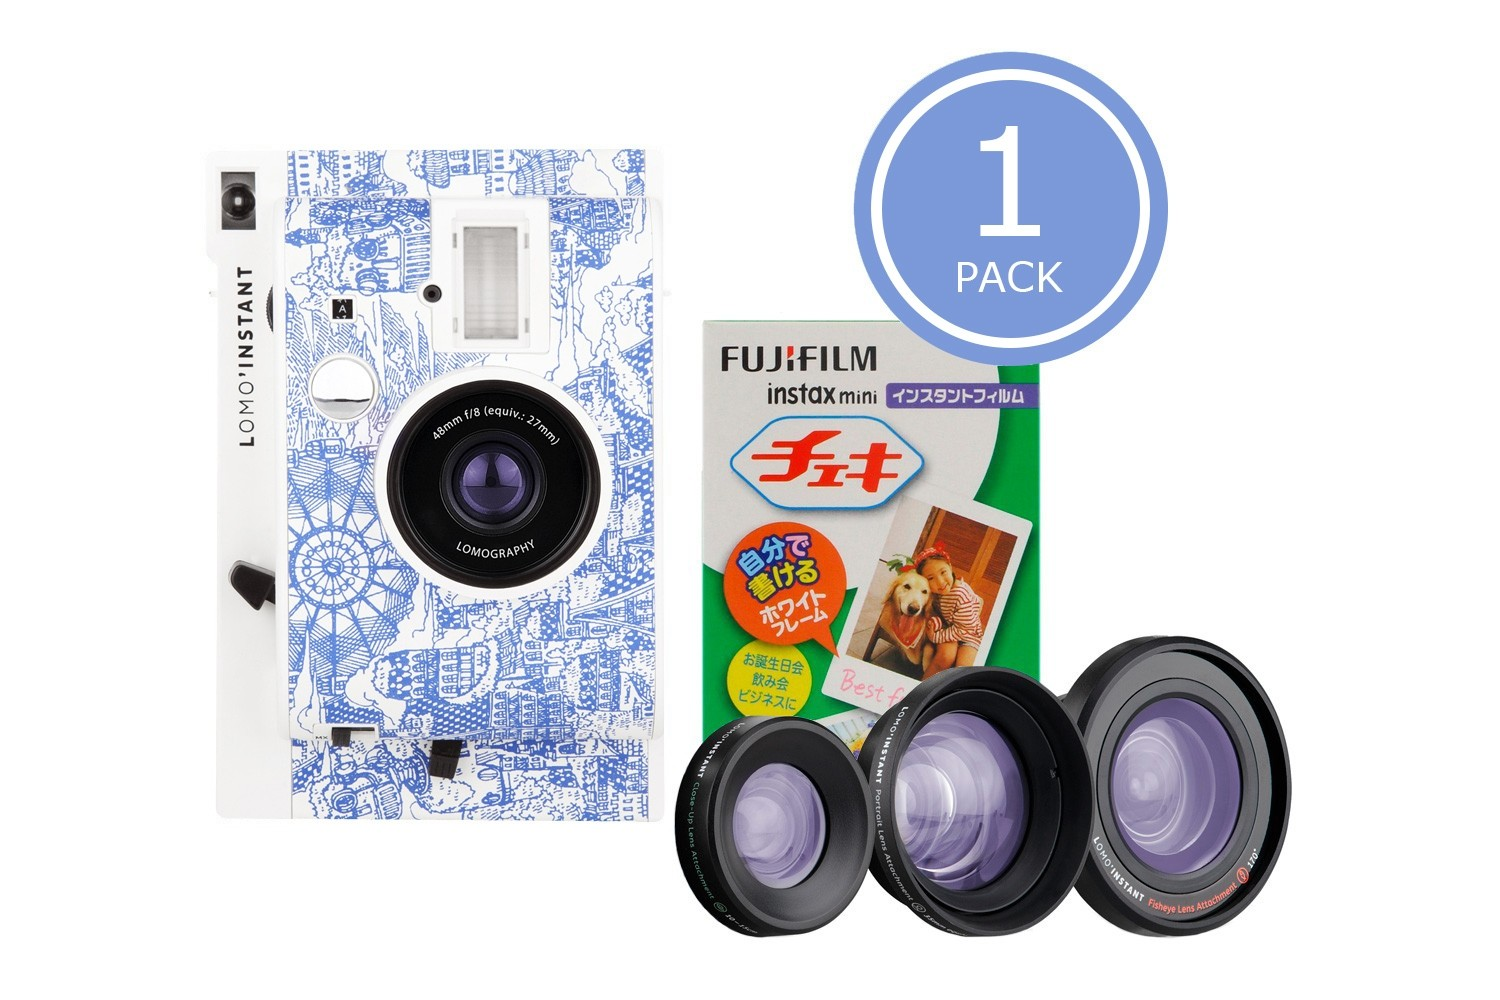 Lomo'Instant Camera and Lenses (Explorer Edition) & 1x Fujifilm Instax Mini Film